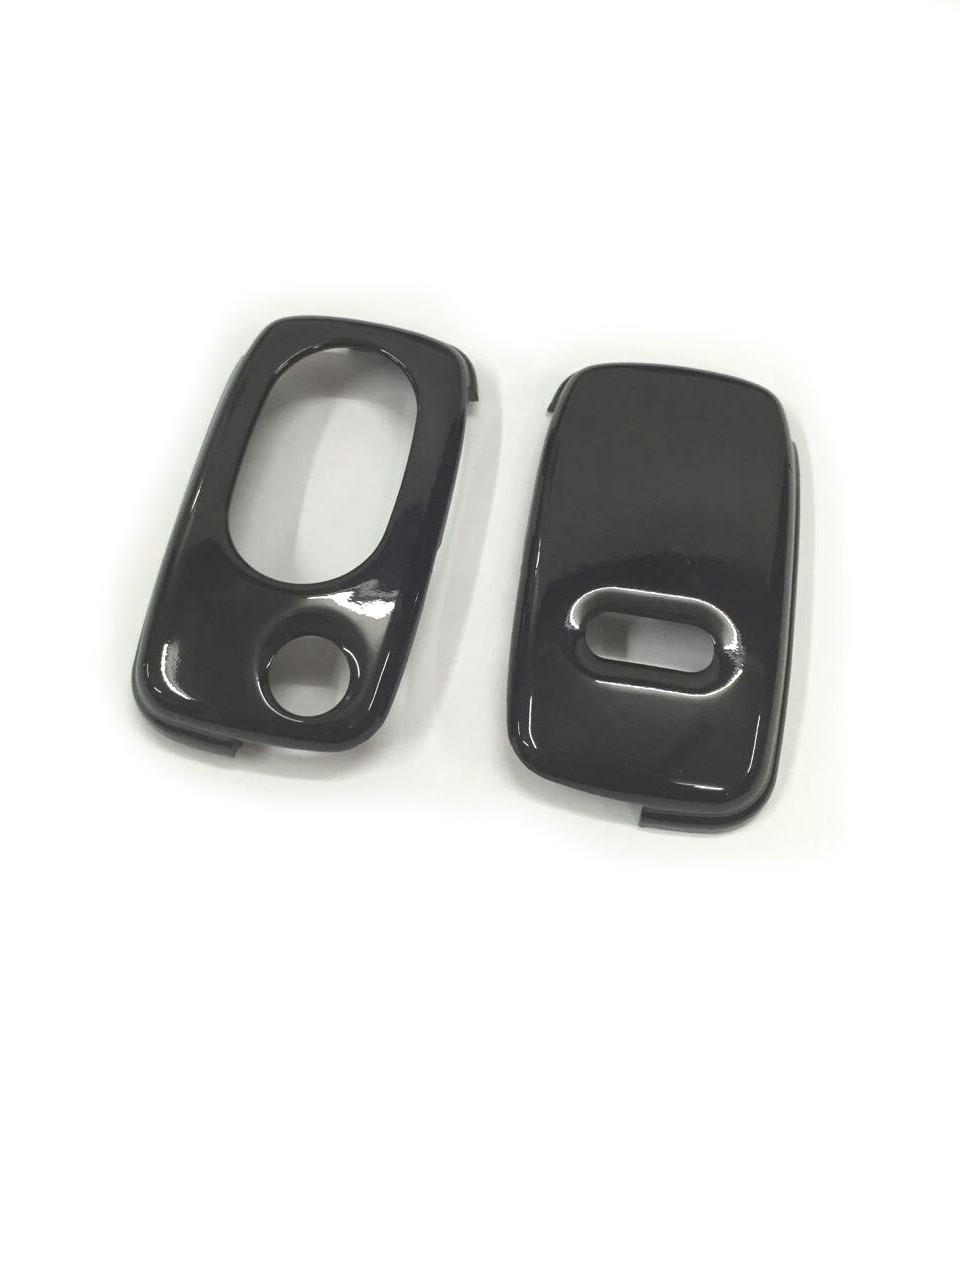 Gloss Black Color Flip <font><b>Key</b></font> <font><b>Remote</b></font> <font><b>Key</b></font> Protection Case For <font><b>Audi</b></font> A3 8L A4 B5 B6 TT MK1 <font><b>A6</b></font> <font><b>C5</b></font> image